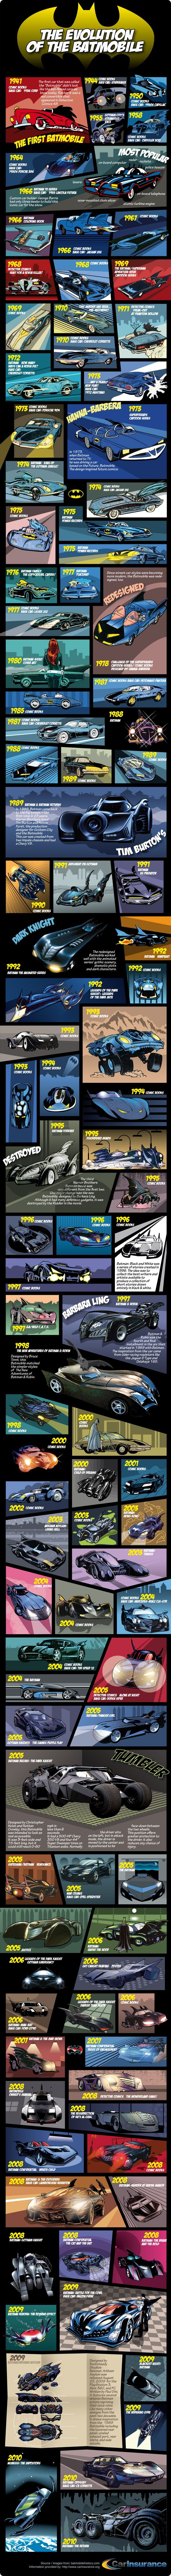 The evolution of the Batmobile. Favorites: 1970, 1975, 1989, and 1992 - the animated series one. What are yours?